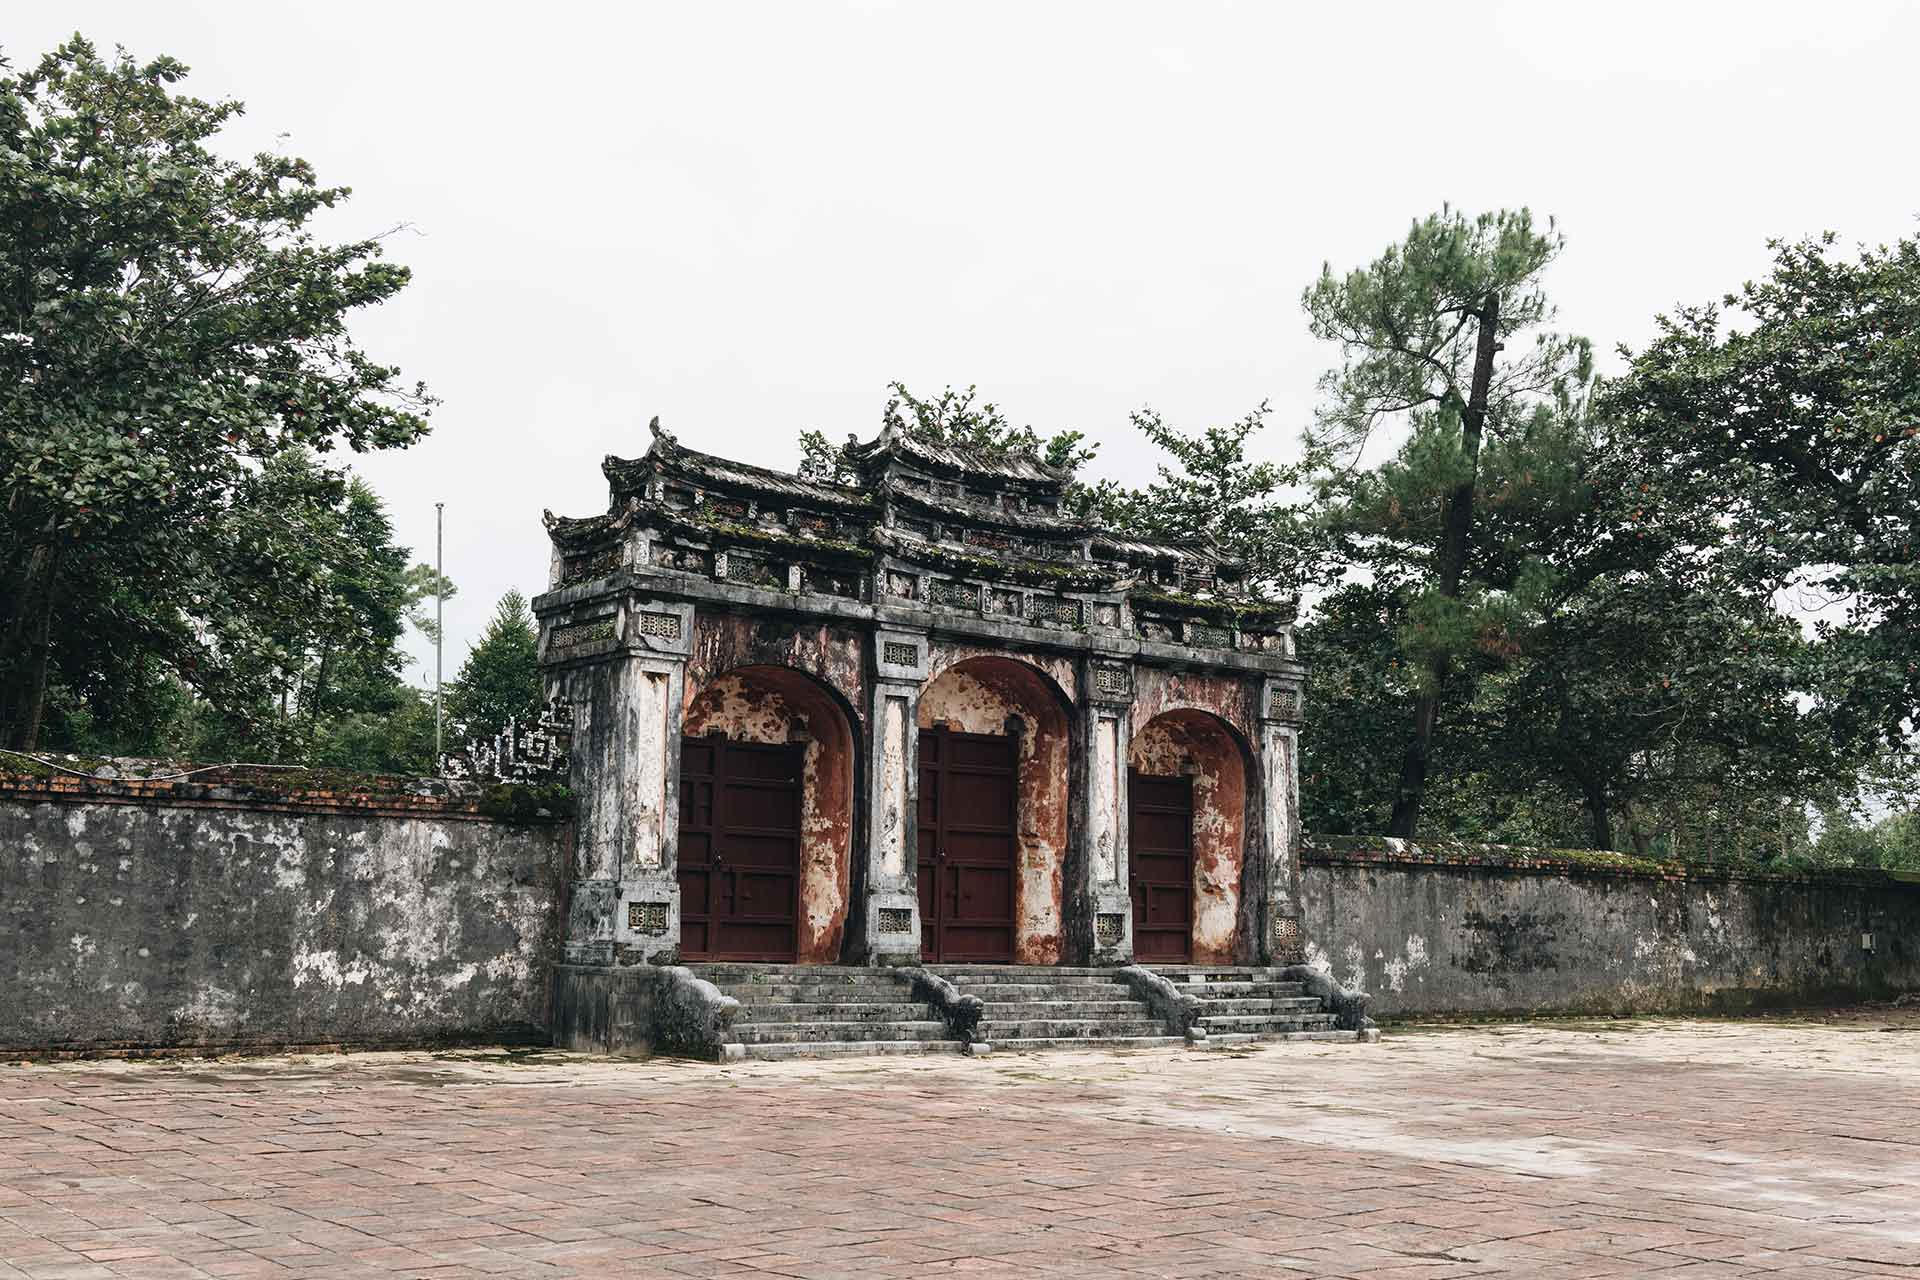 Tomb of Minh Mang in Hue, Vietnam